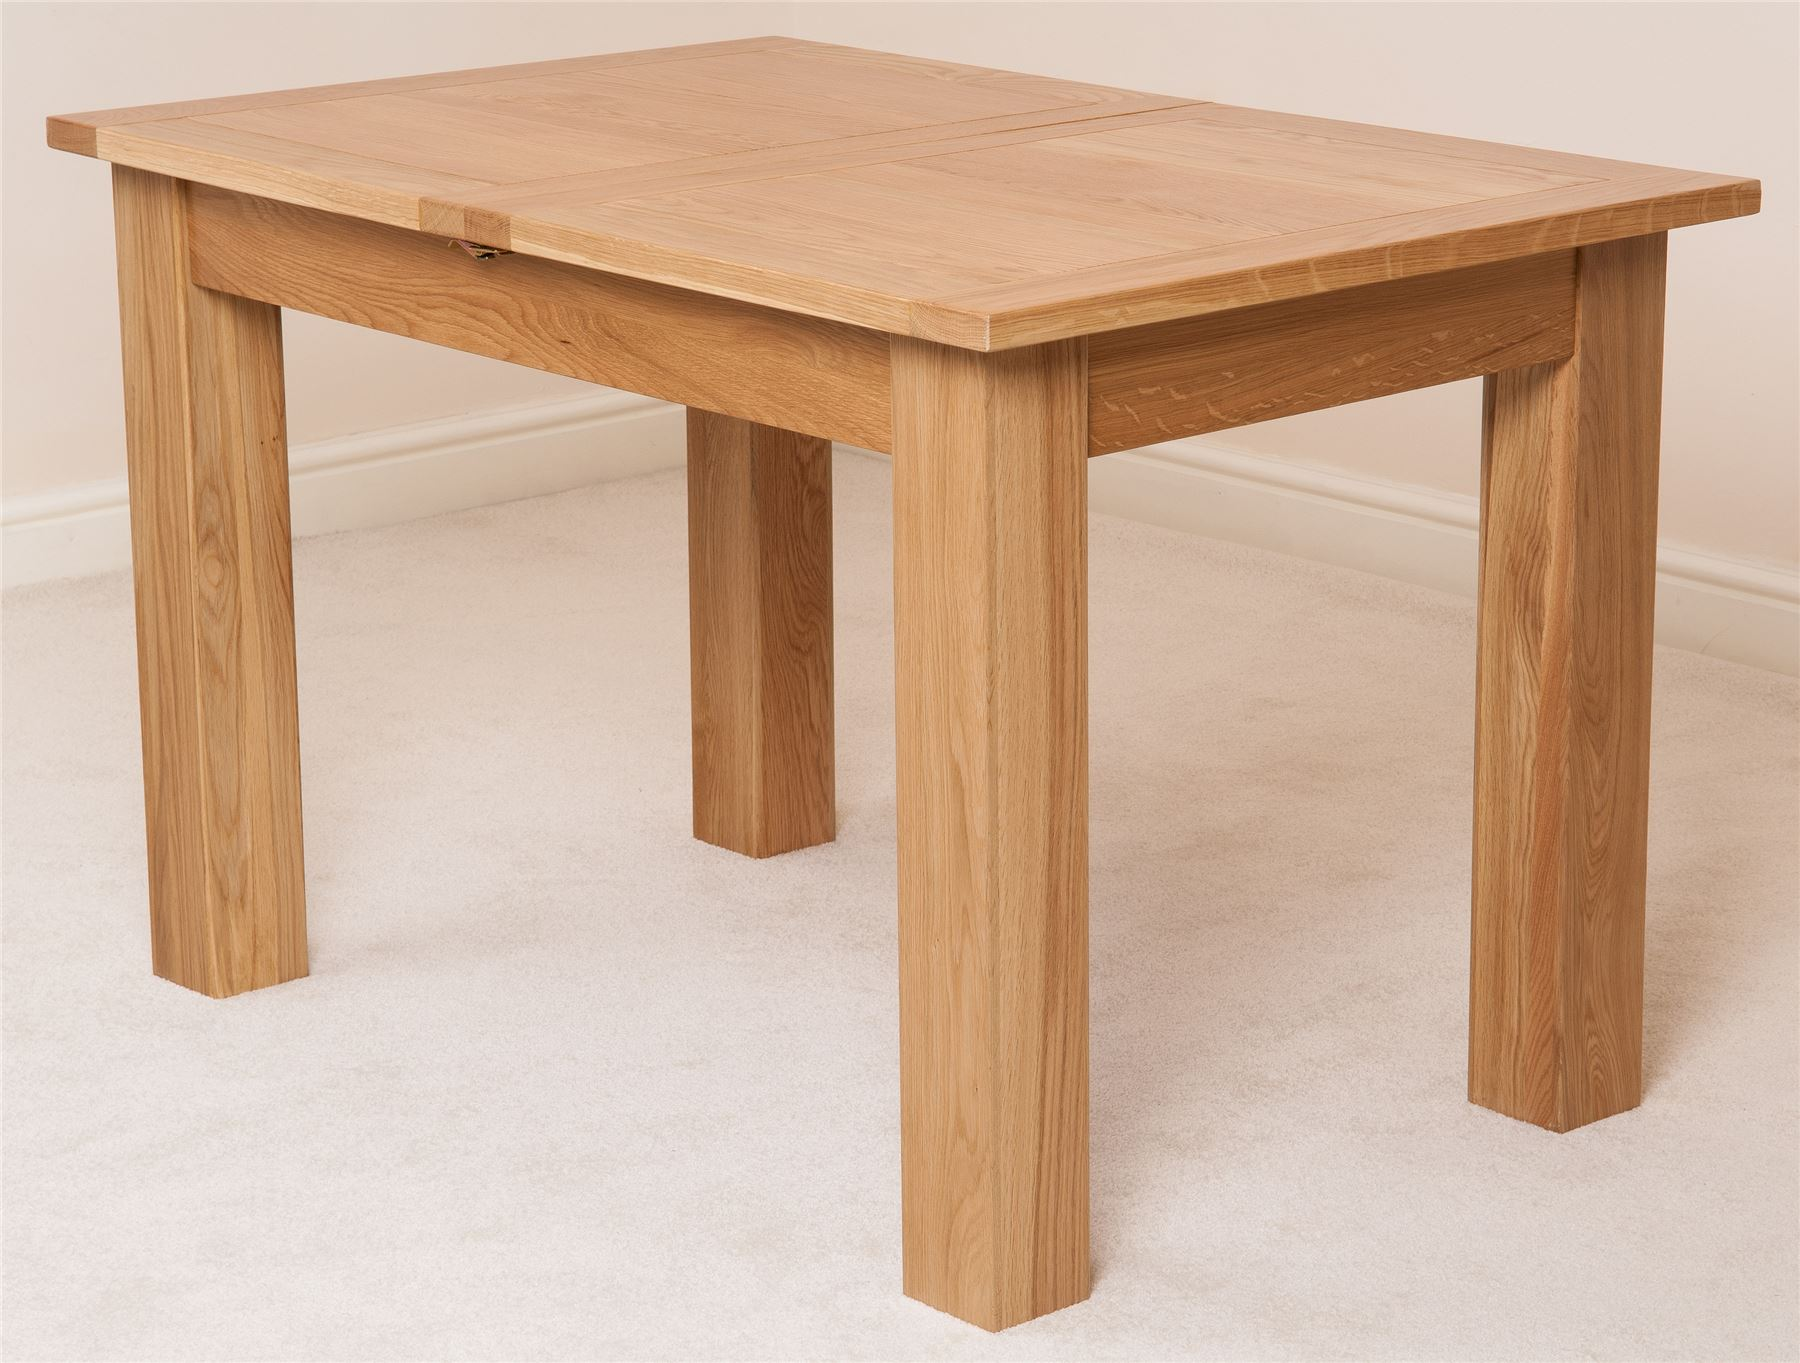 Hampton Solid Oak Wood Medium 120cm Extending Table Wooden